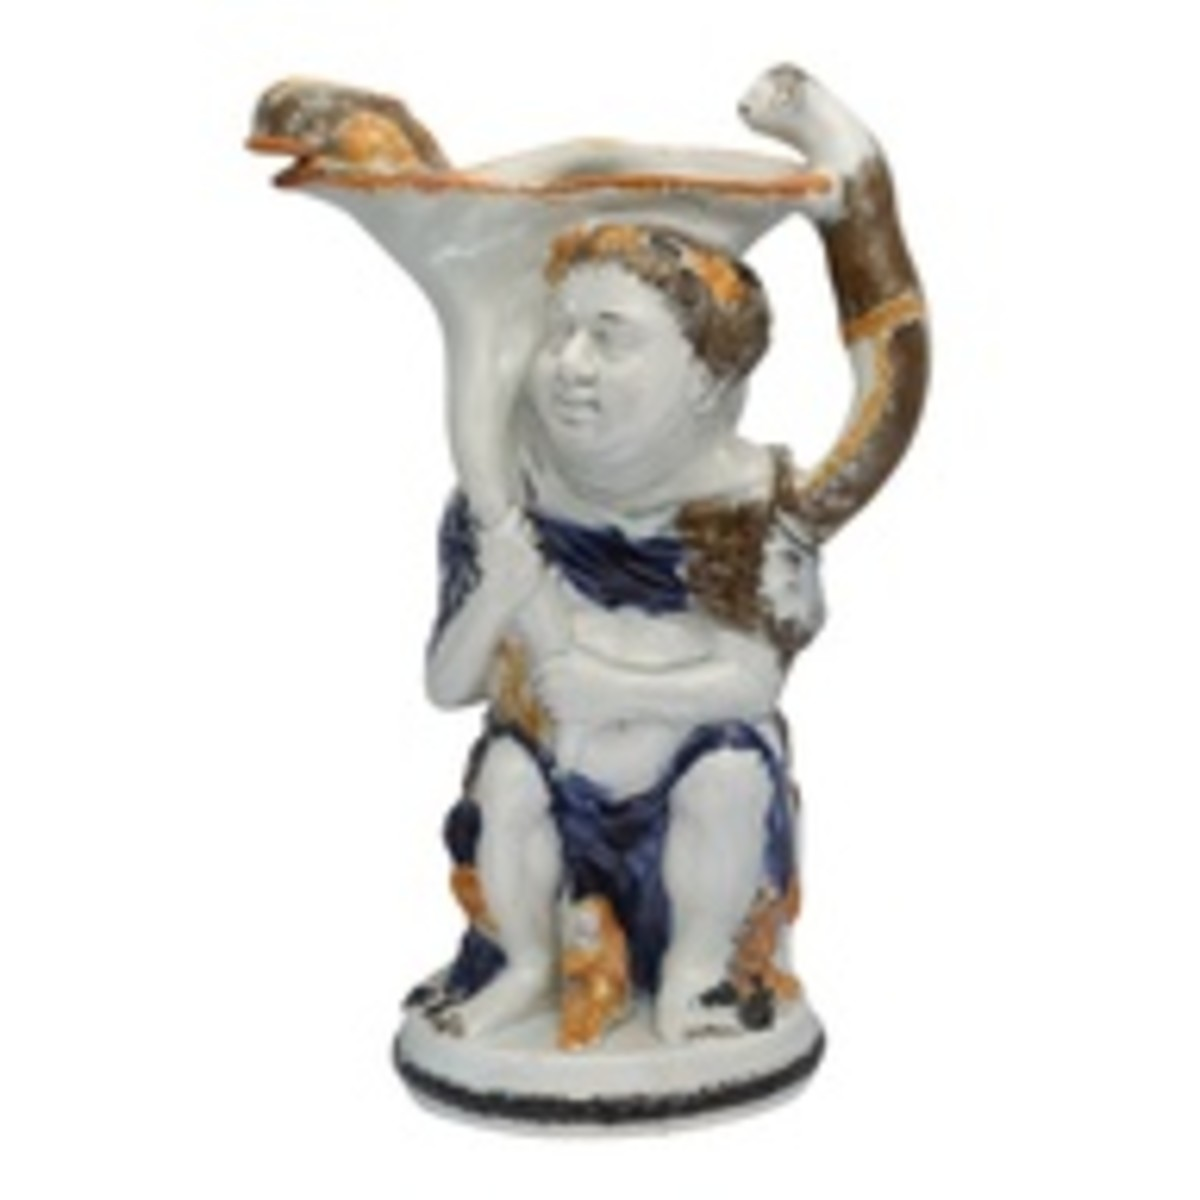 This is a rare and very early Pratt toby jug depicting Bacchus, God of Wine.